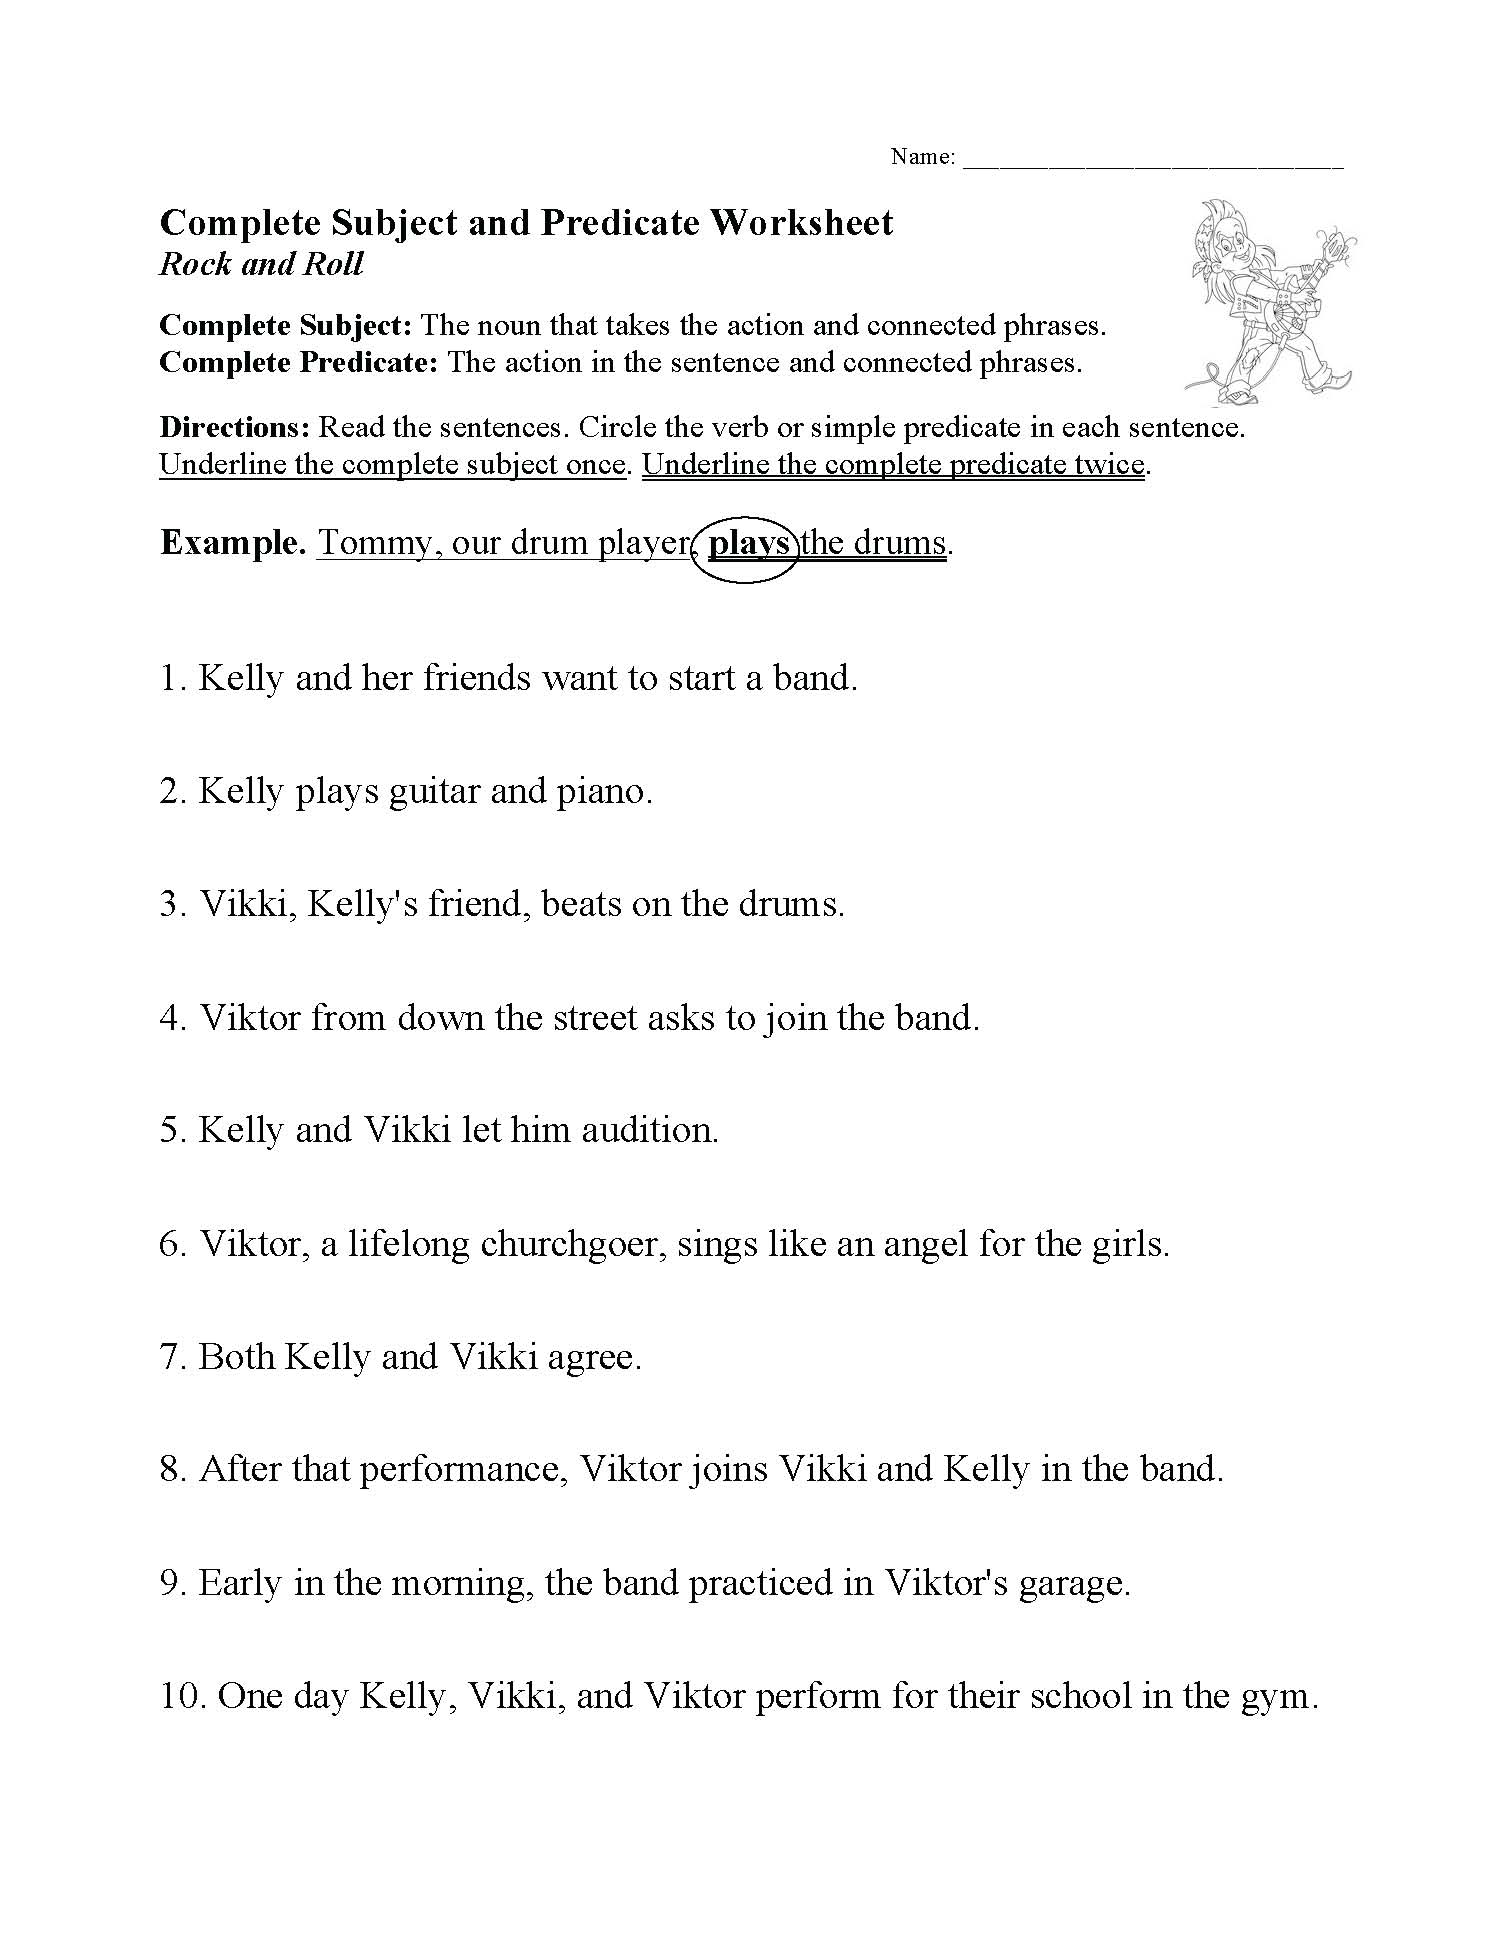 This is a preview image of our Complete Subject and Predicate Worksheet. Click on it to enlarge this image and view the source file.